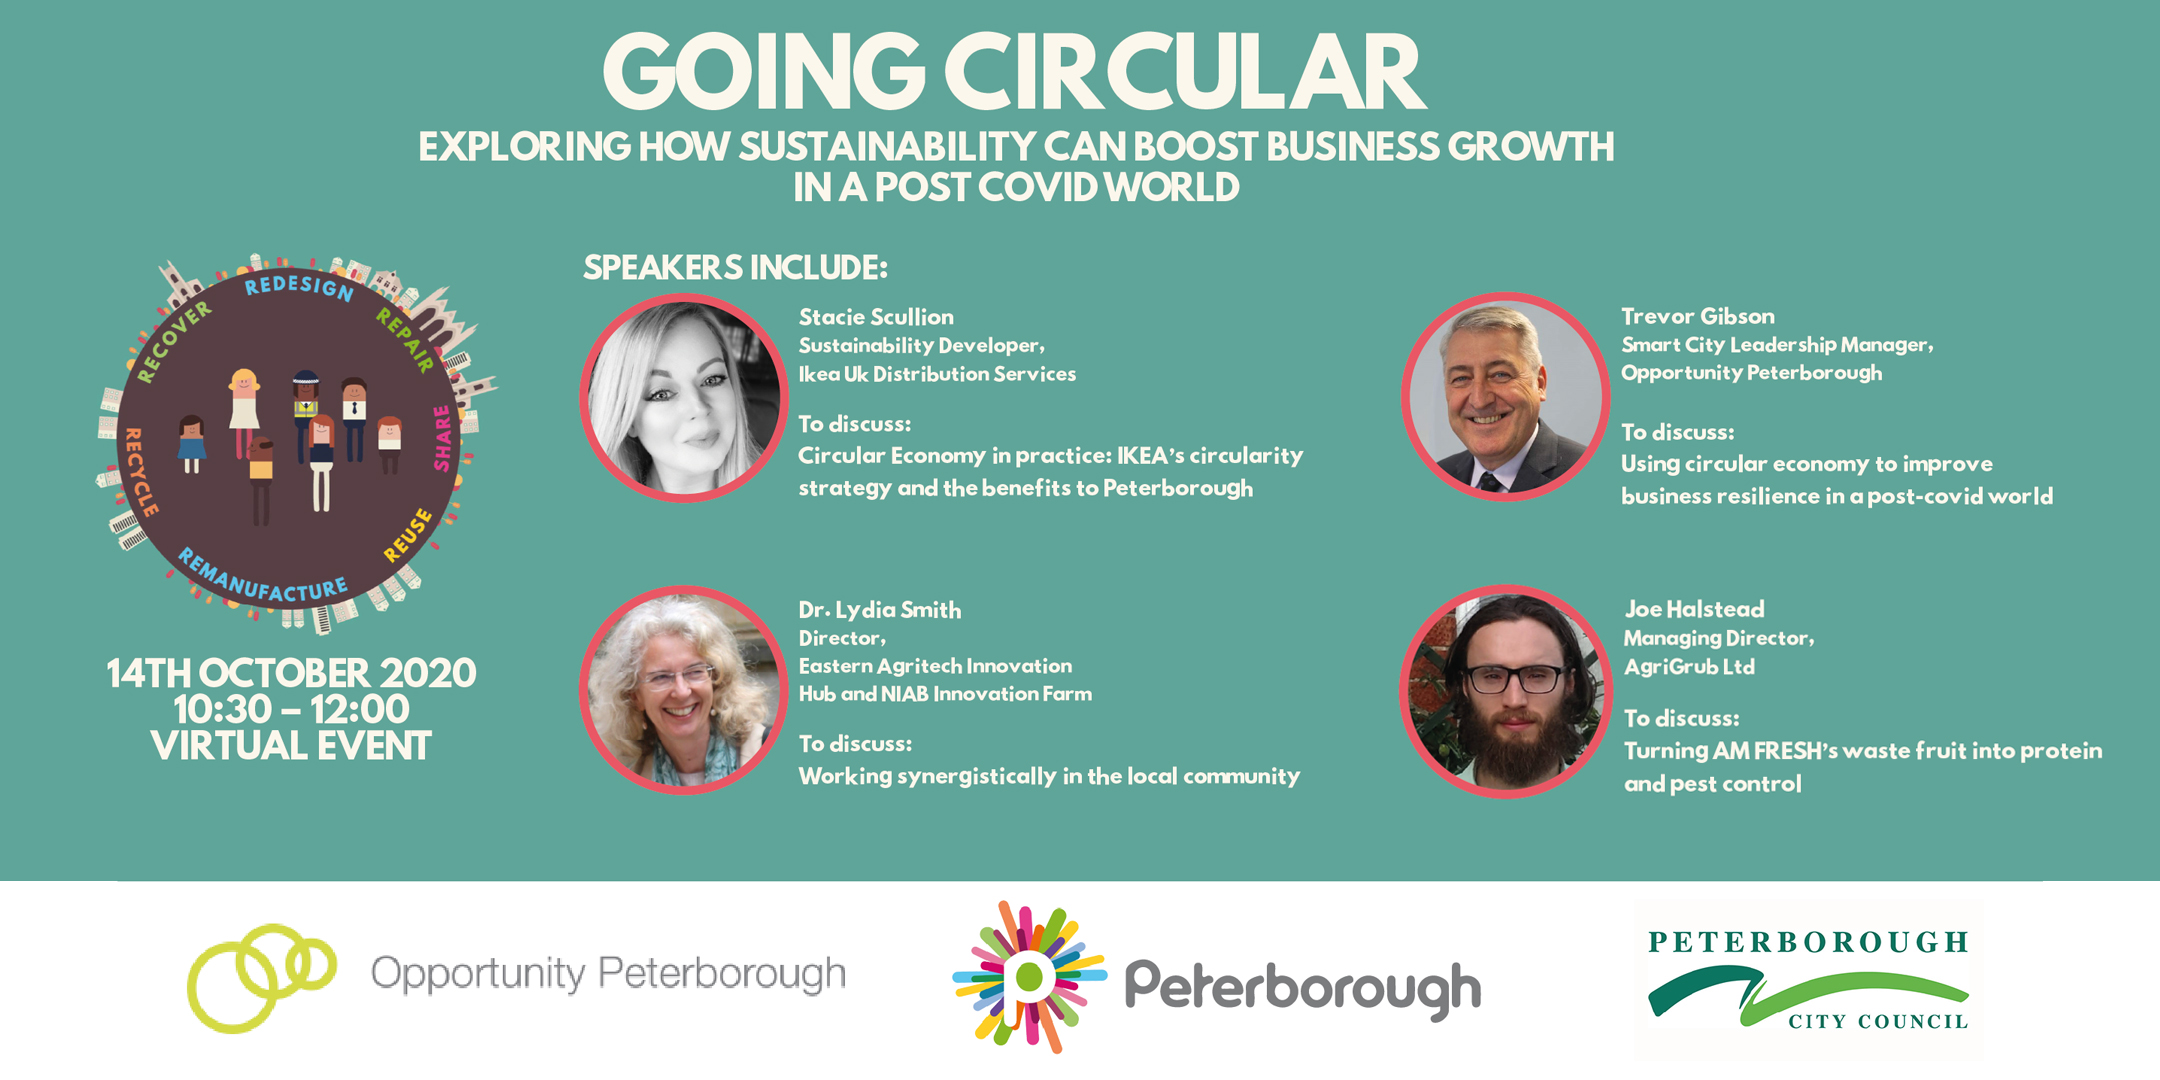 Going circular – exploring how sustainability can boost business growth in a post-COVID19 world